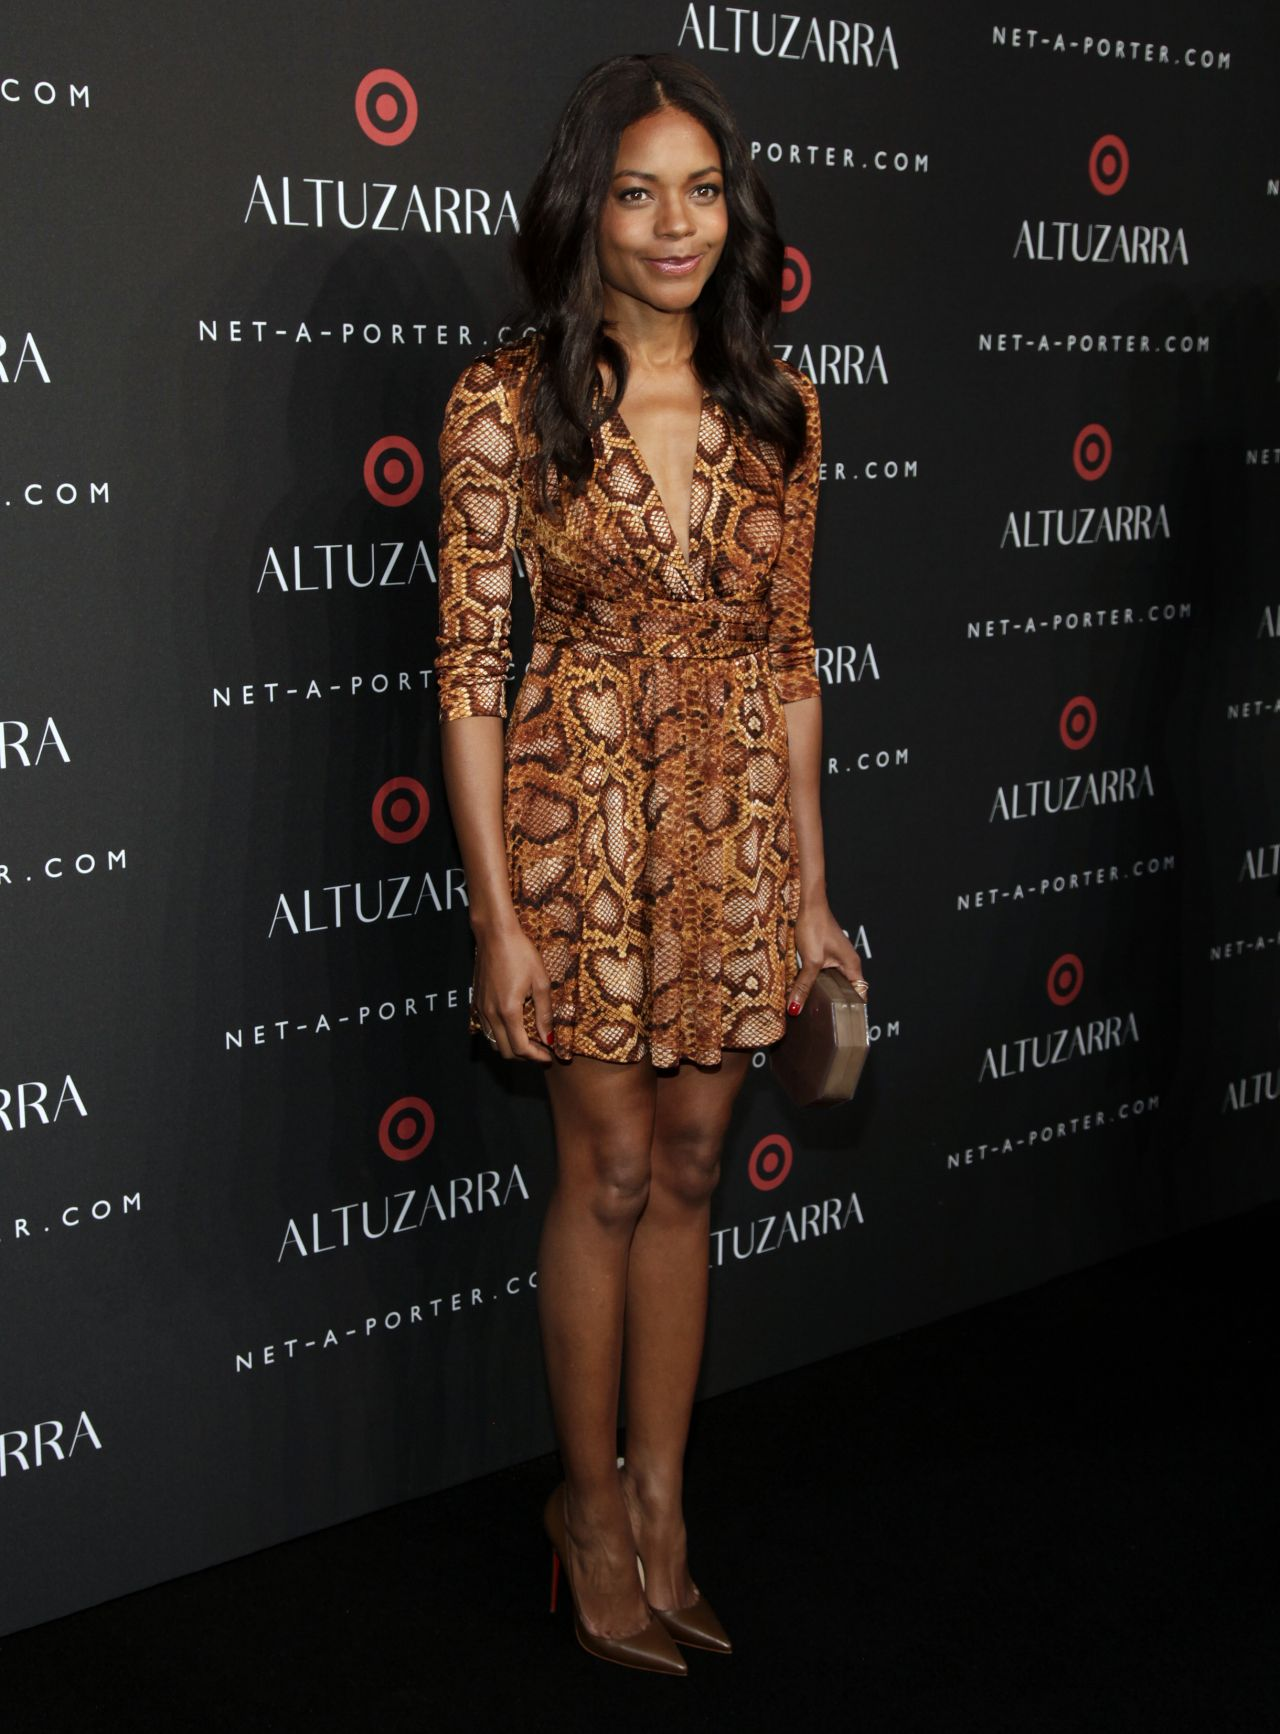 Naomie Harris - Altuzarra for Target Launch Event in NYC - Fashion Week Spring 2015